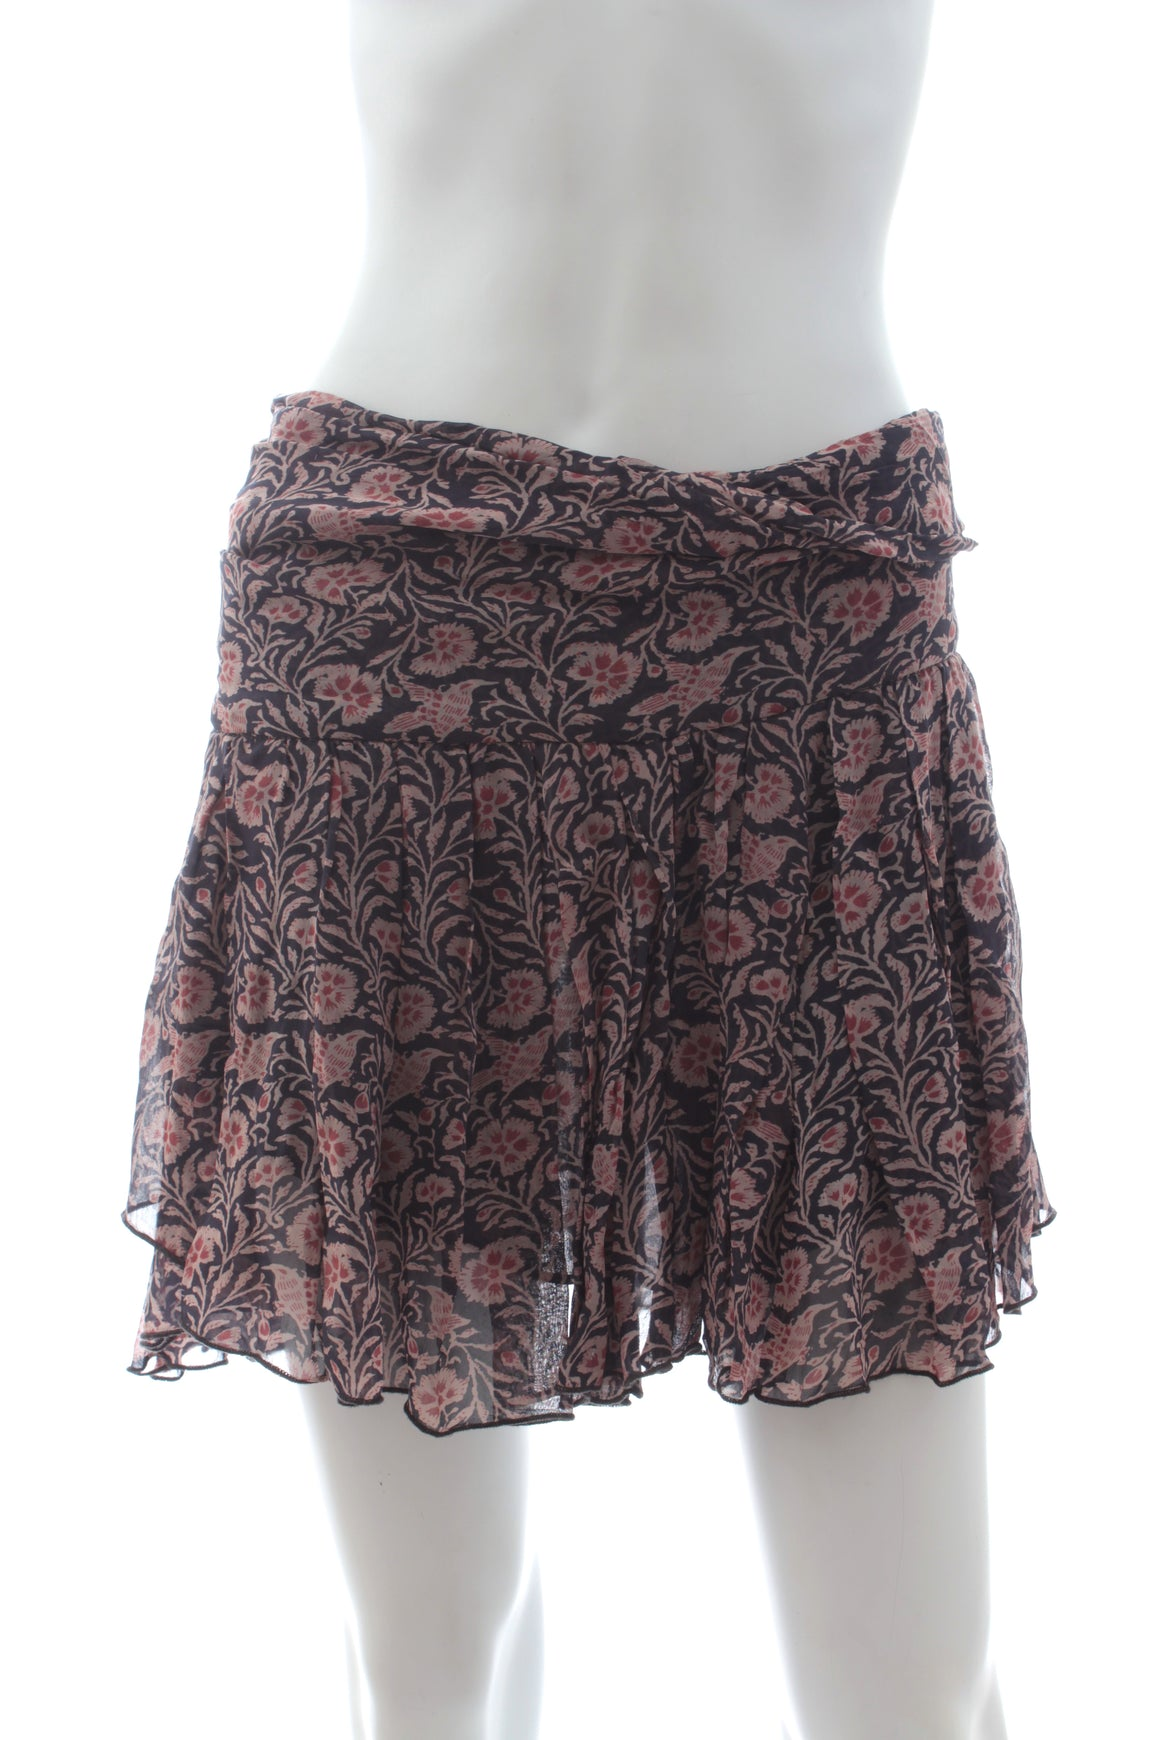 Isabel Marant Etoile 'Drune' Printed Mini Skirt